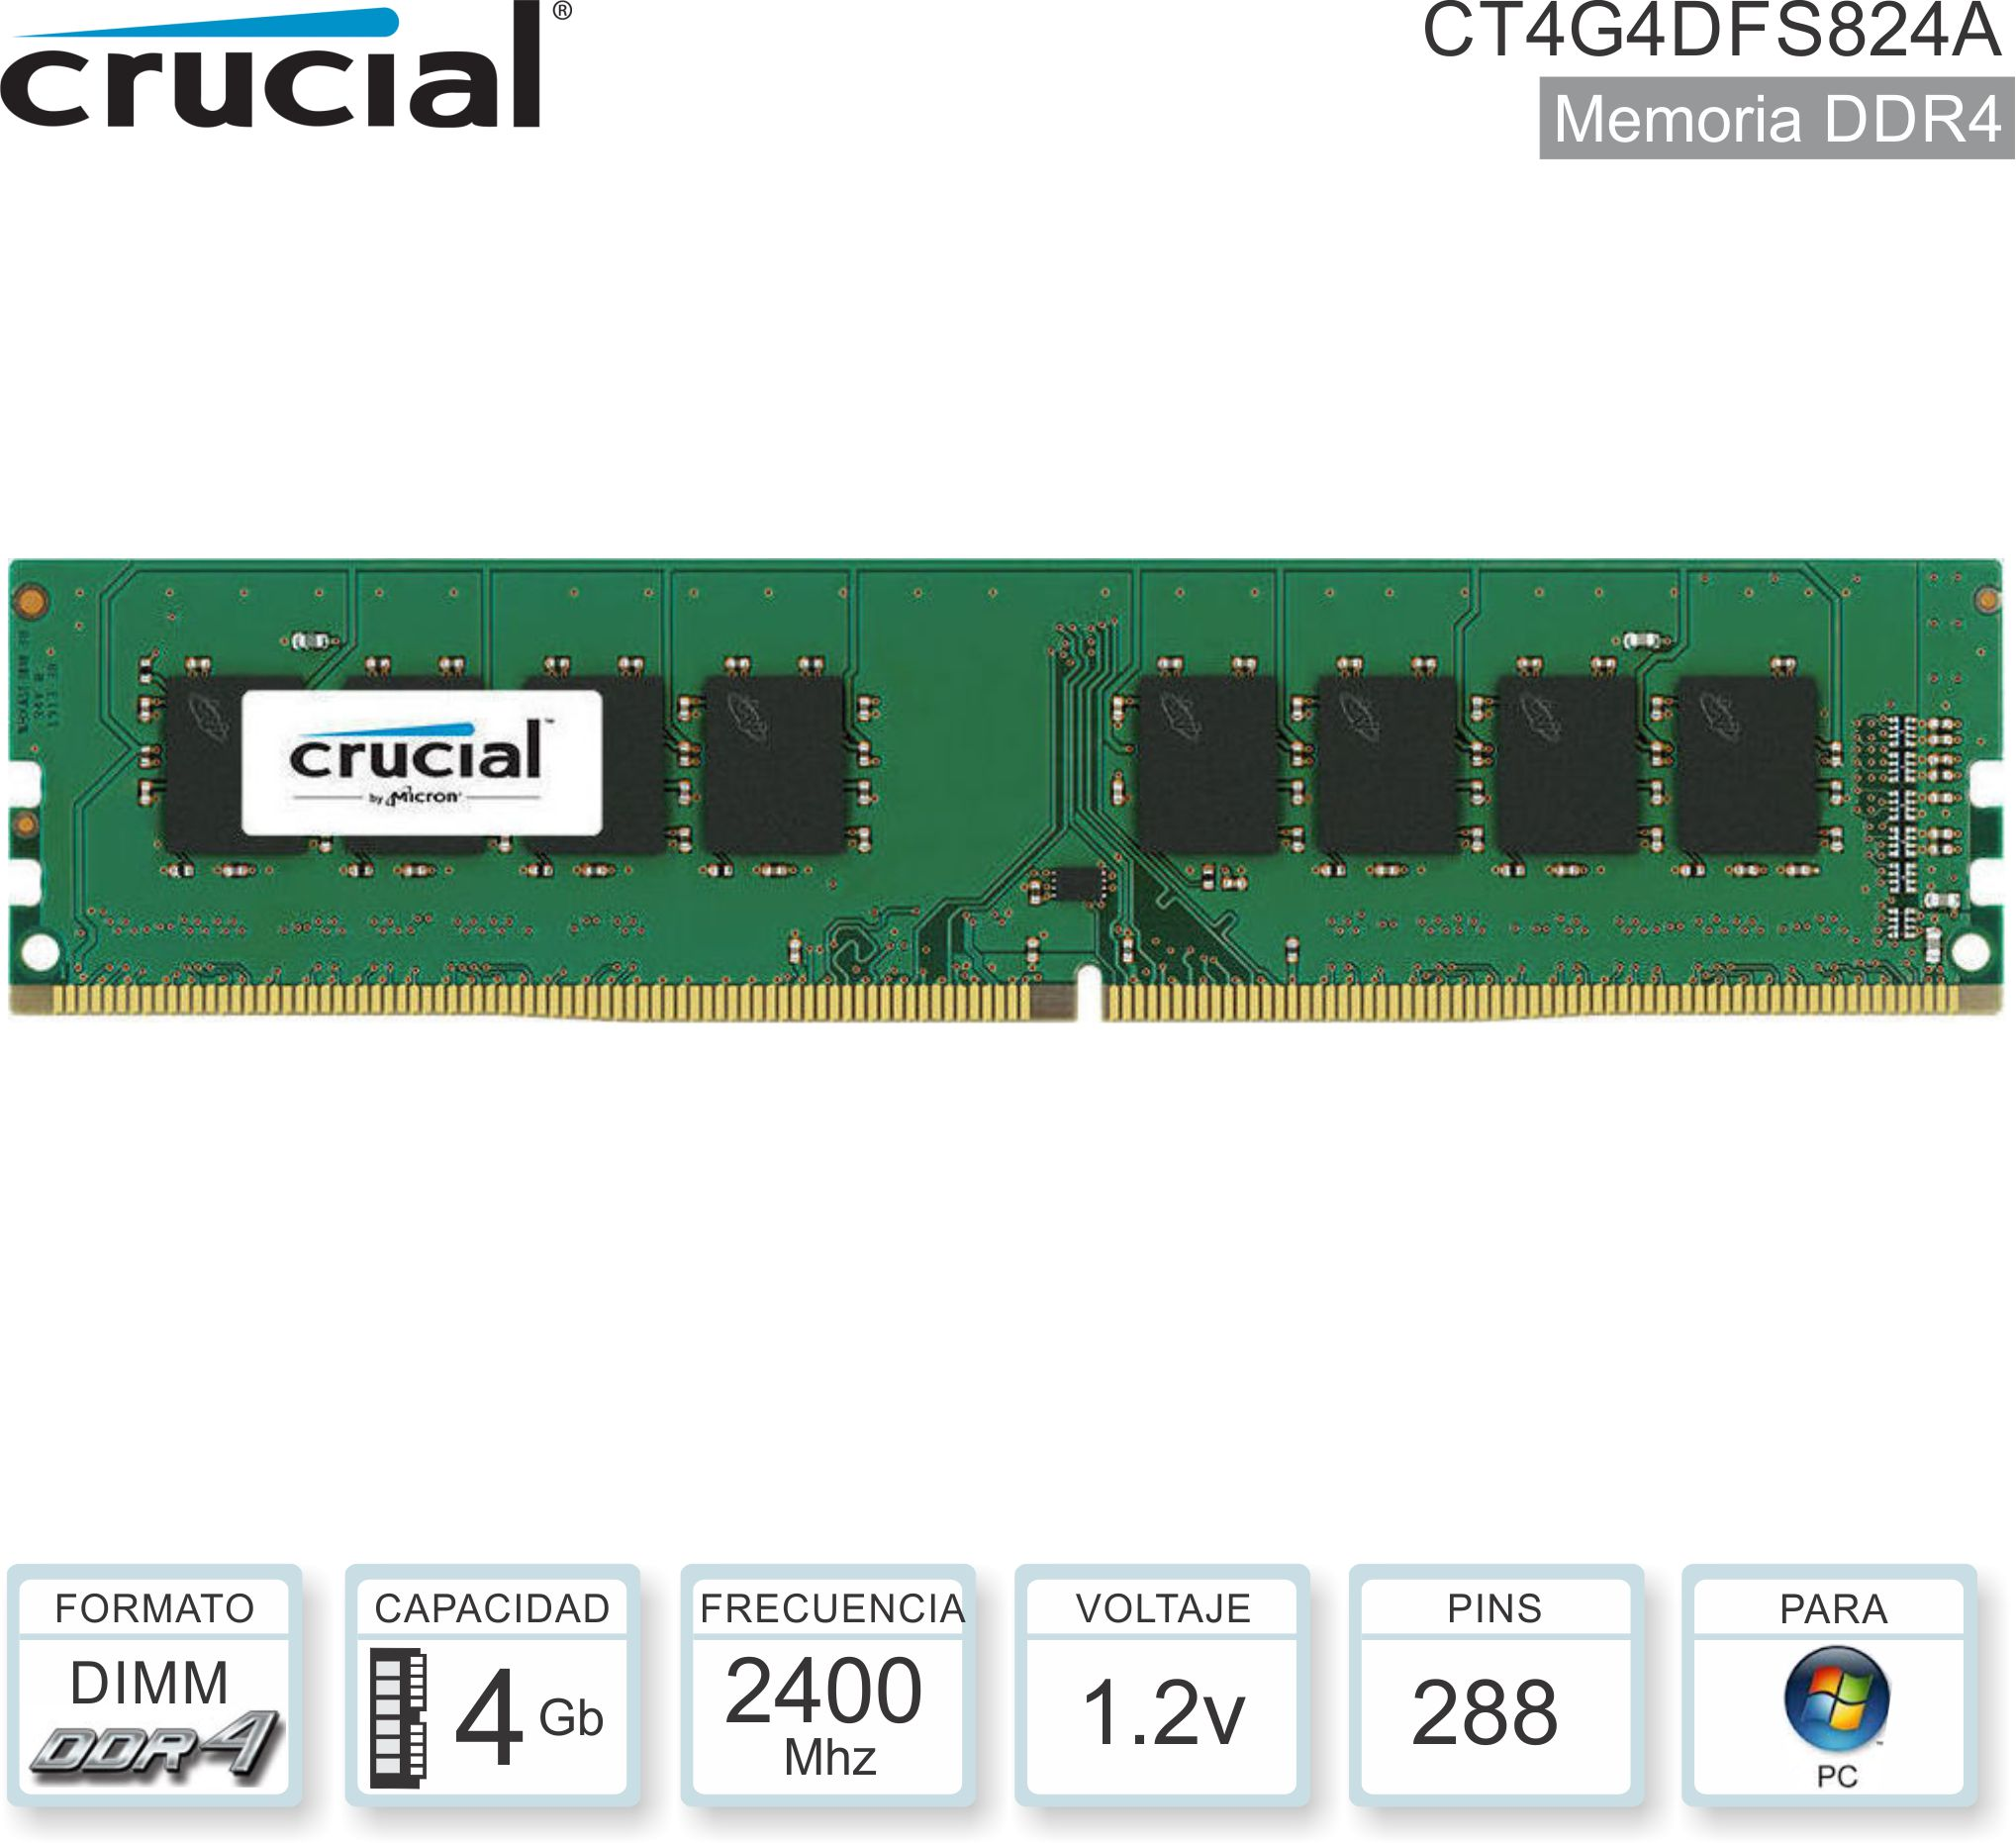 DDR4 04Gb 2400 1.20v CRUCIAL CT4G4DFS824A